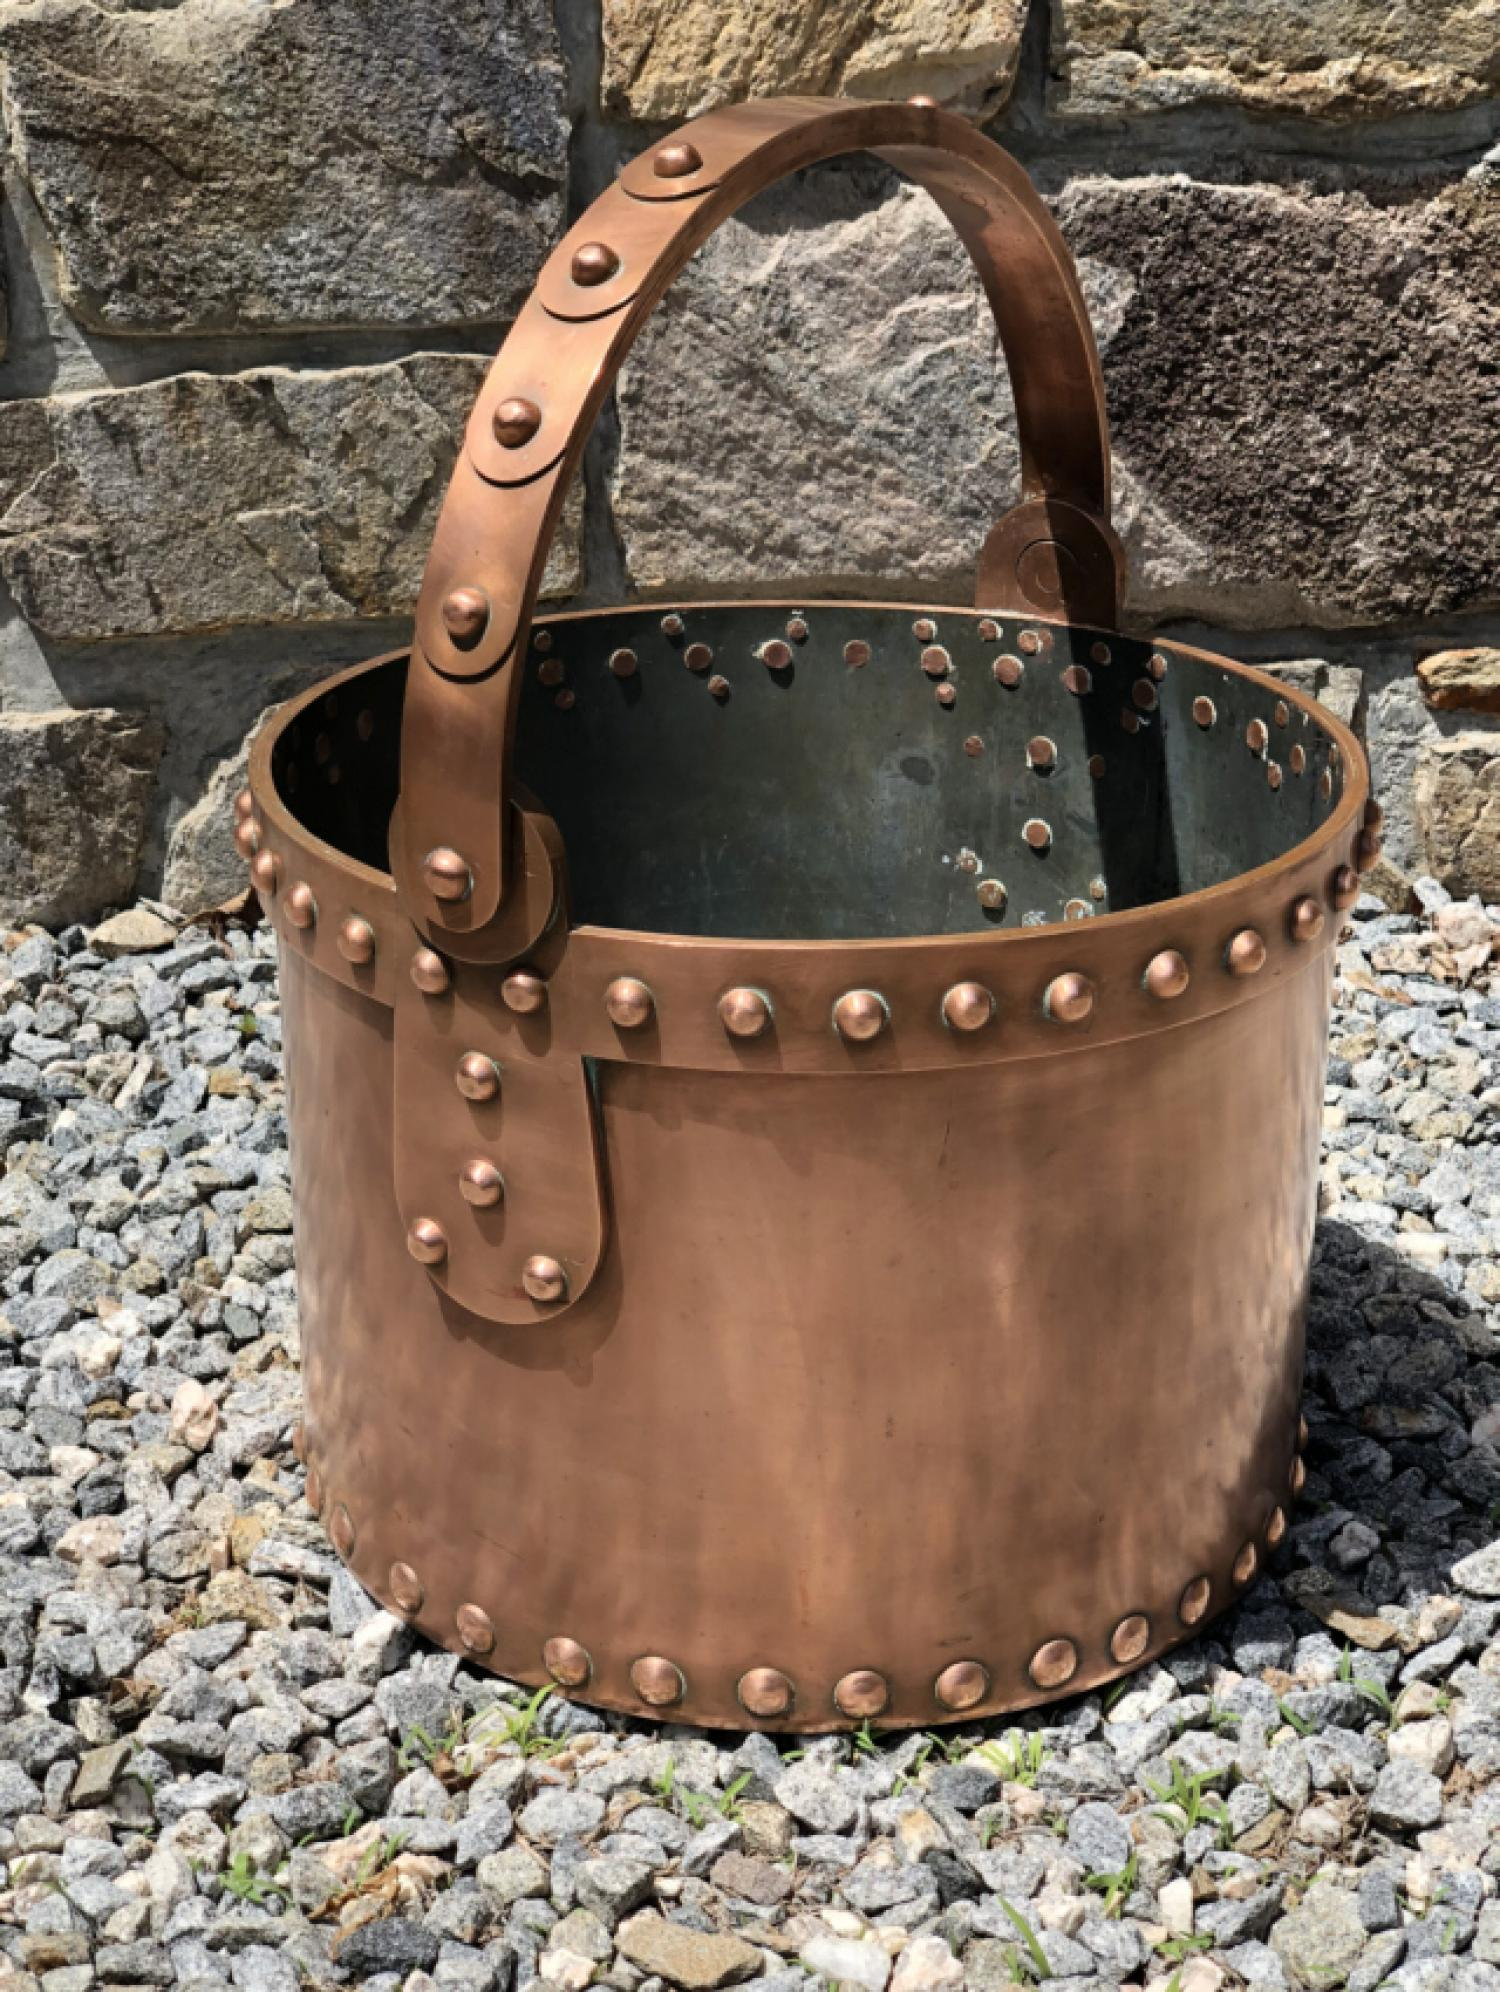 Steam punk industrial copper bucket